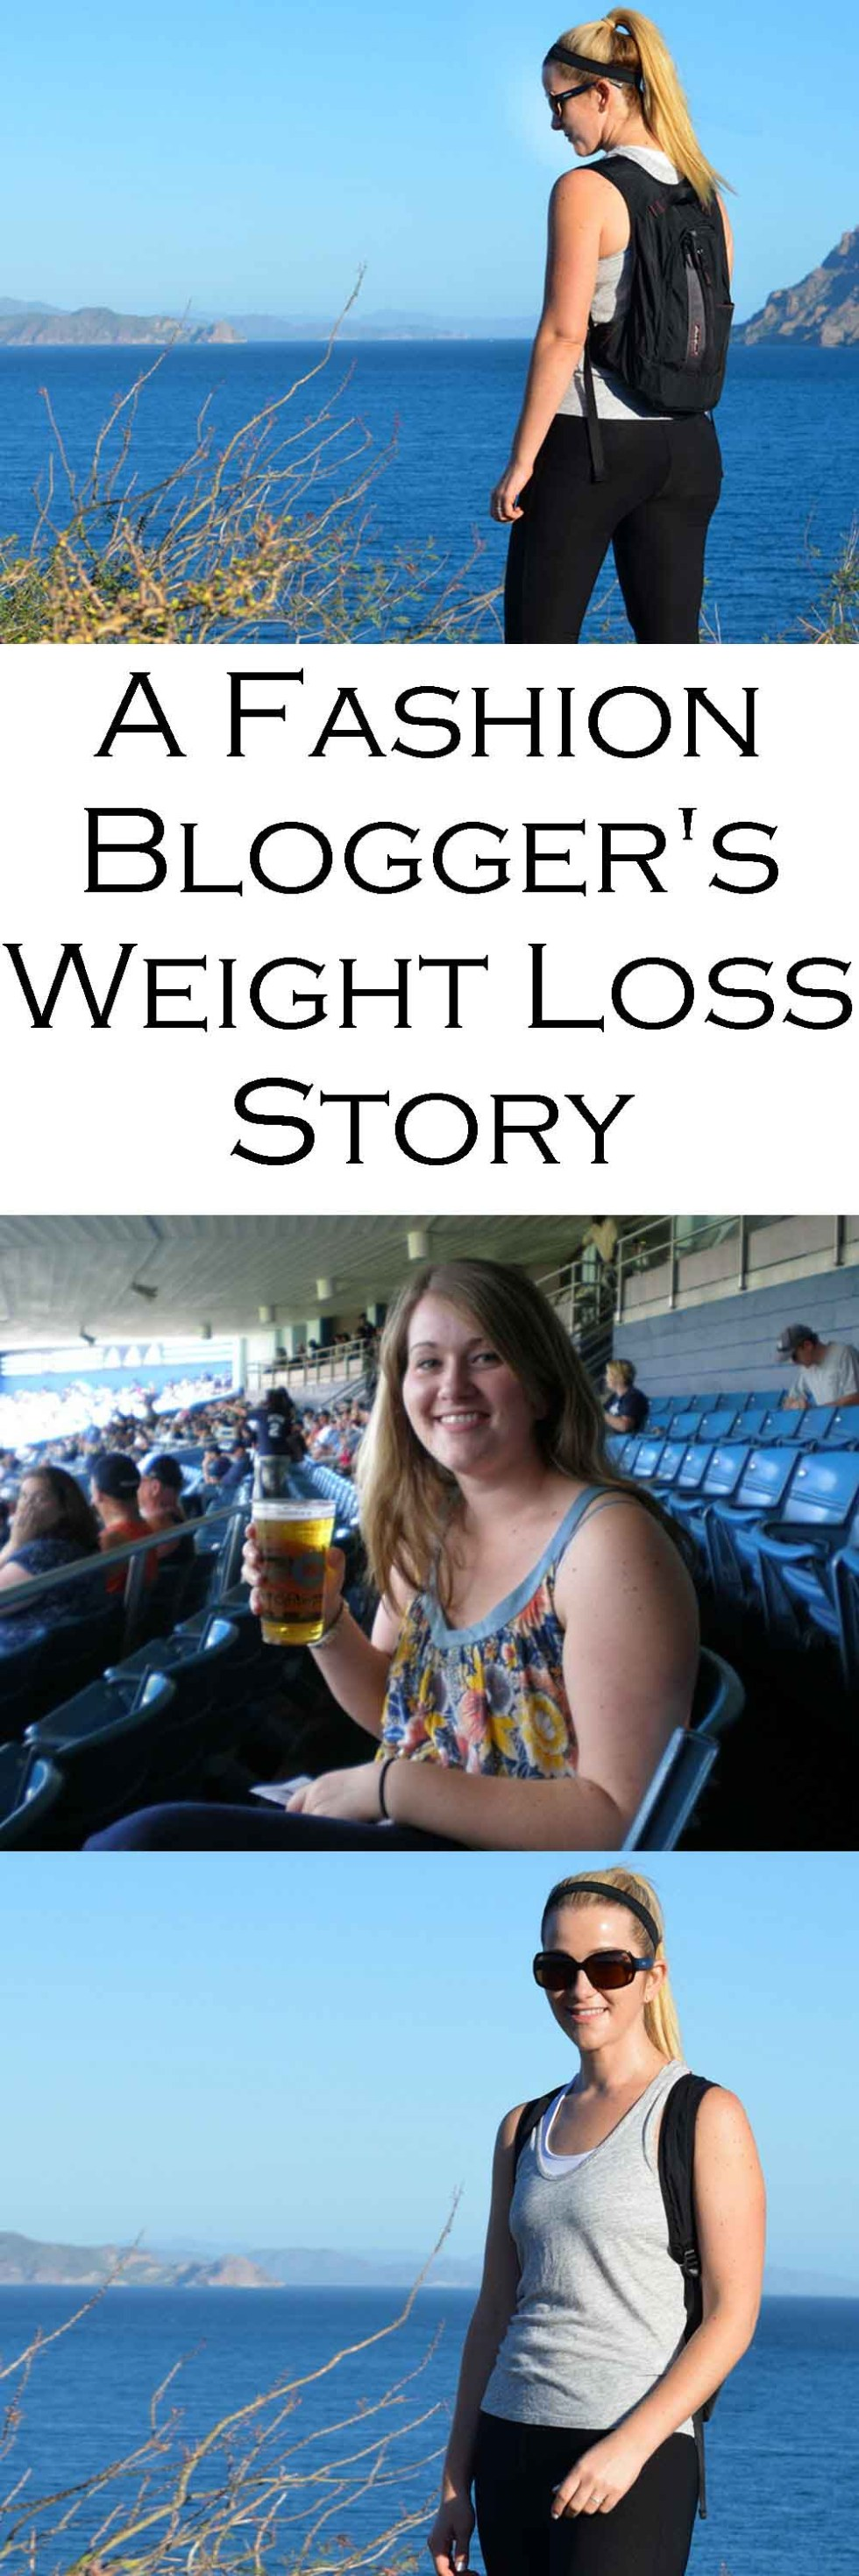 Weight Loss Story - Fashion Blogger #weightloss #naturalweightloss #weightlossstory #weightlossstories #fashionblog #fashionblogger #healthylifestyletips